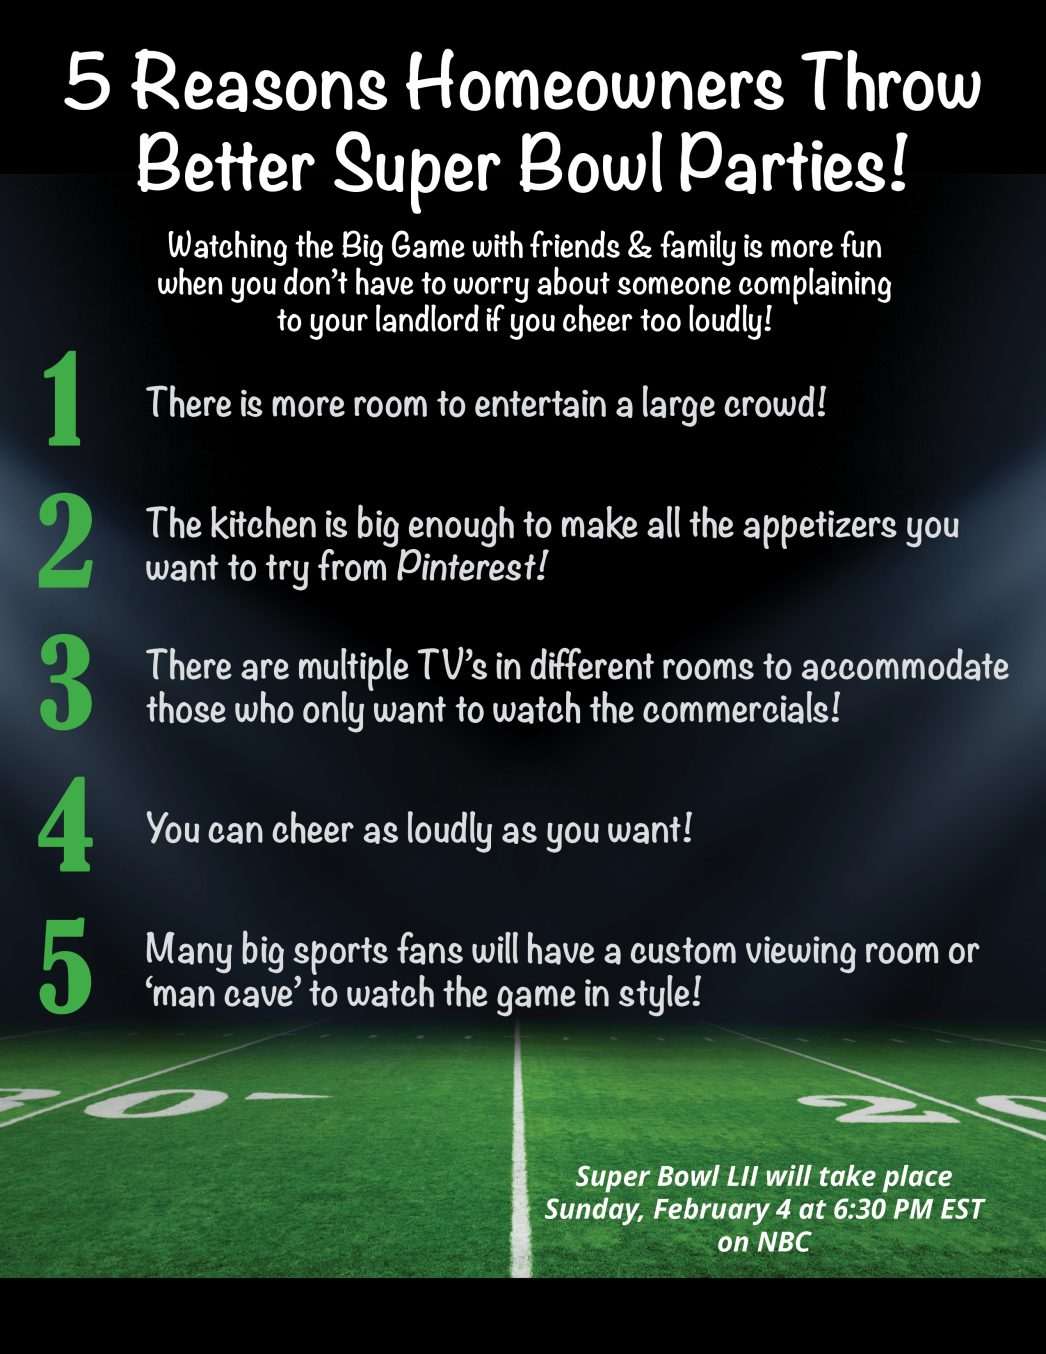 5 Reasons Homeowners Can Throw Better Super Bowl Parties! [INFOGRAPHIC] | MyKCM